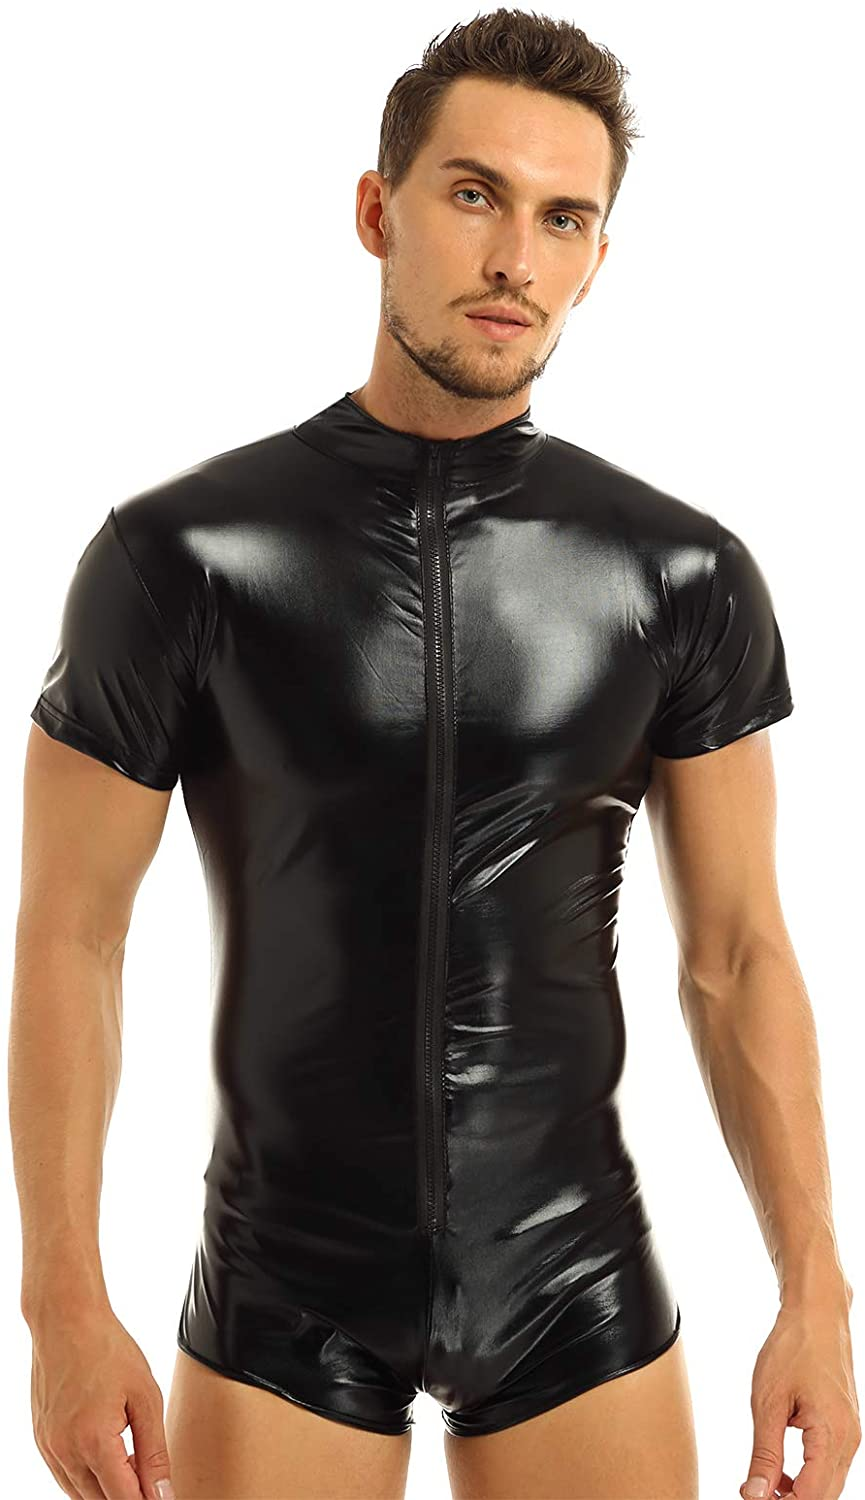 YONGHS Mens Lingerie One Piece Shiny Metallic Short Sleeves Zipper Leotard Bodysuit